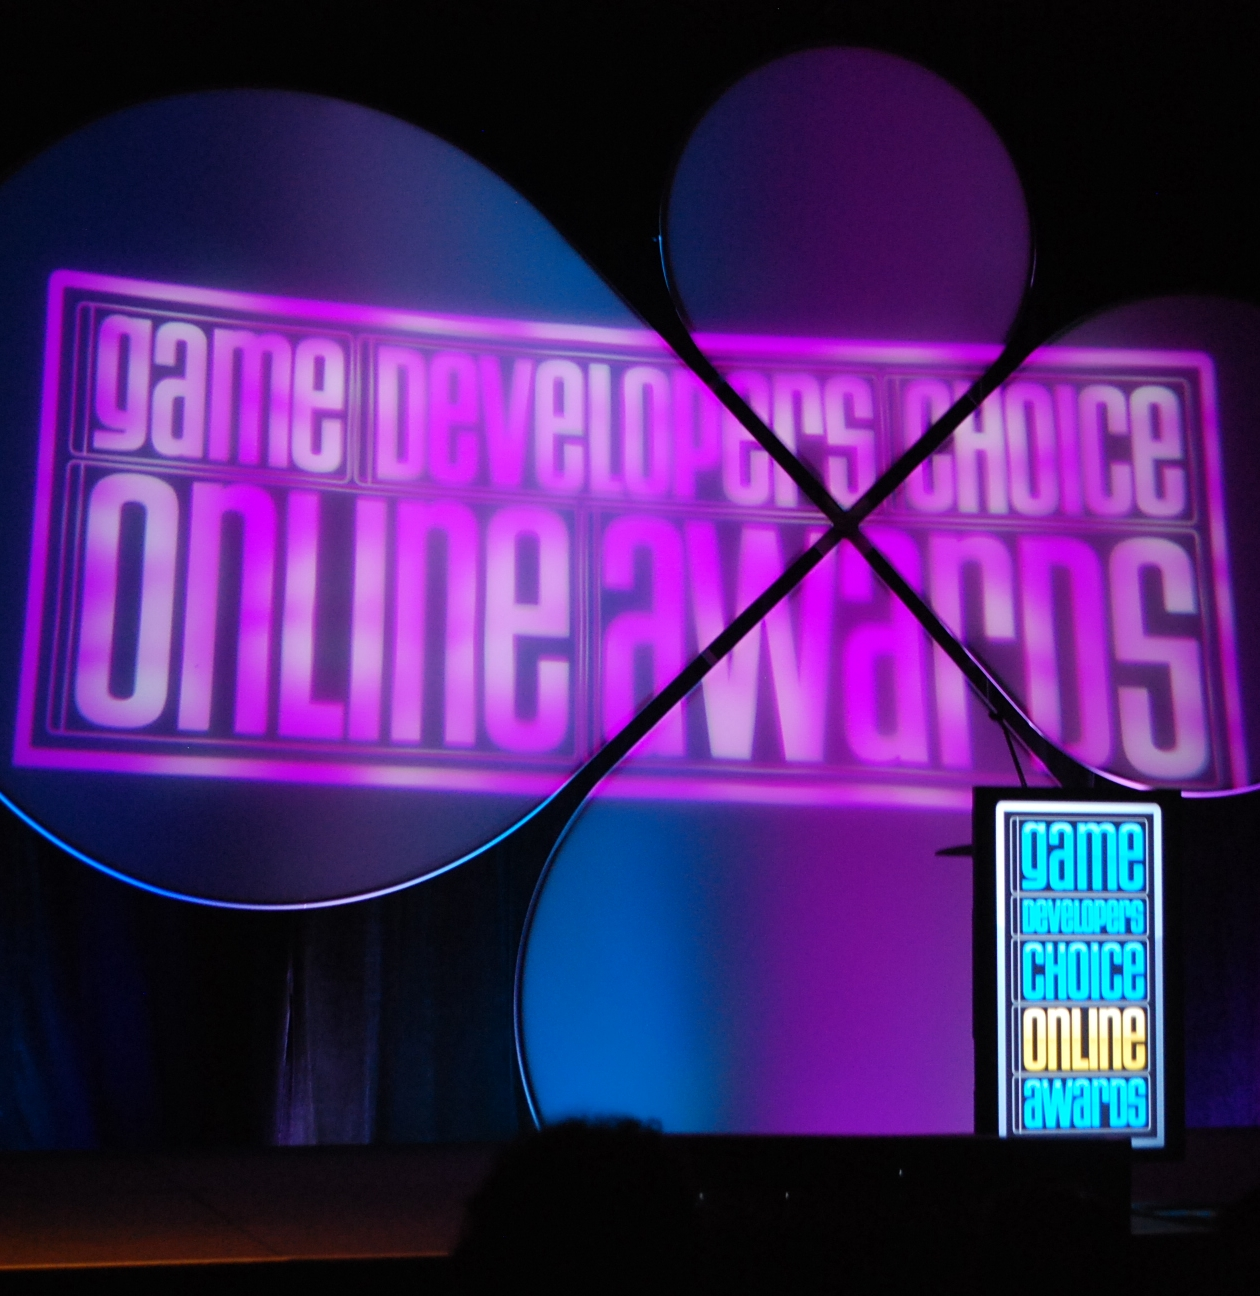 GDC Online Awards Audience Award